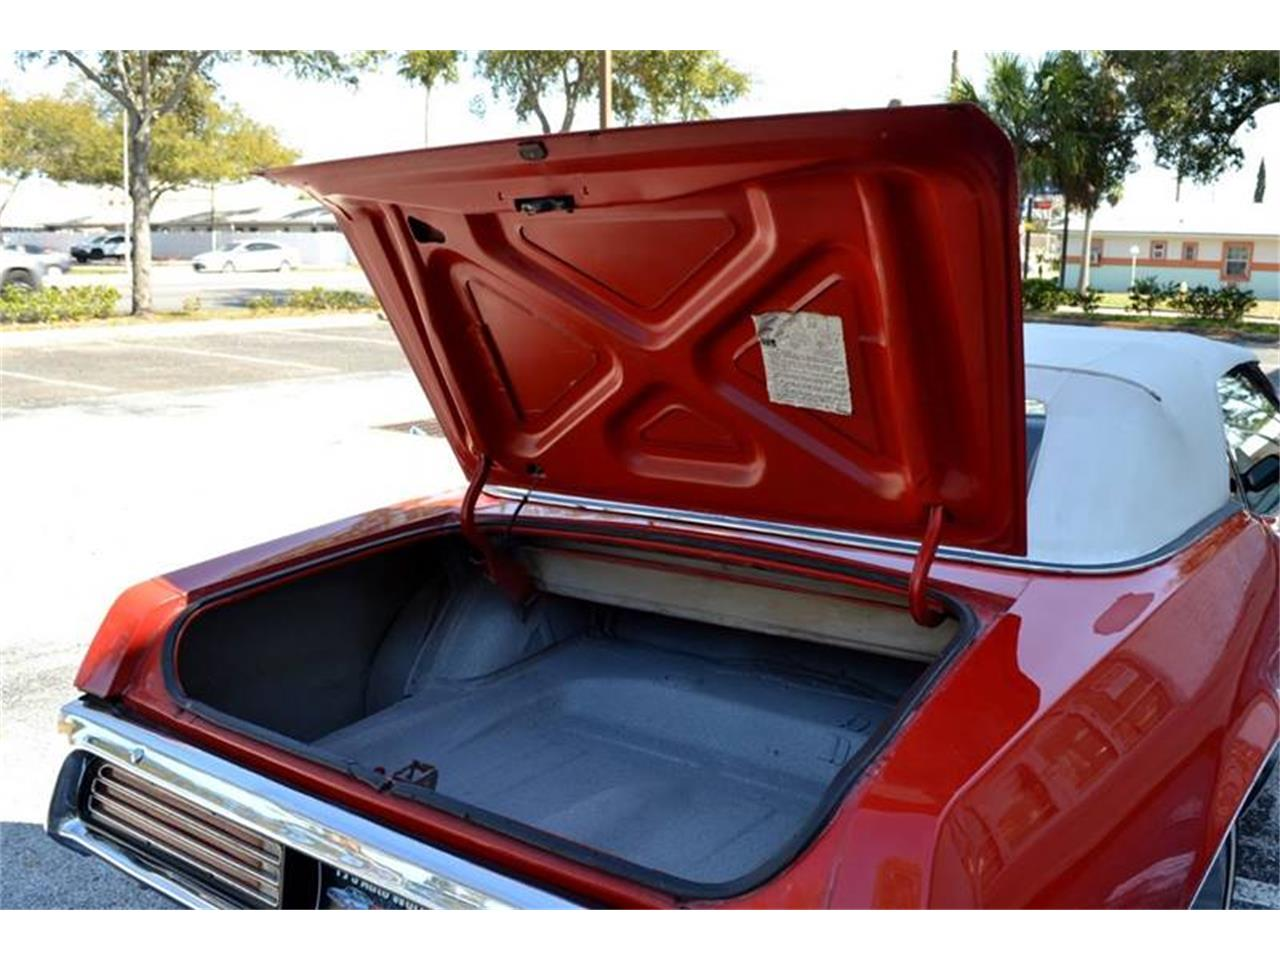 1972 Mercury Cougar (CC-1183905) for sale in Clearwater, Florida